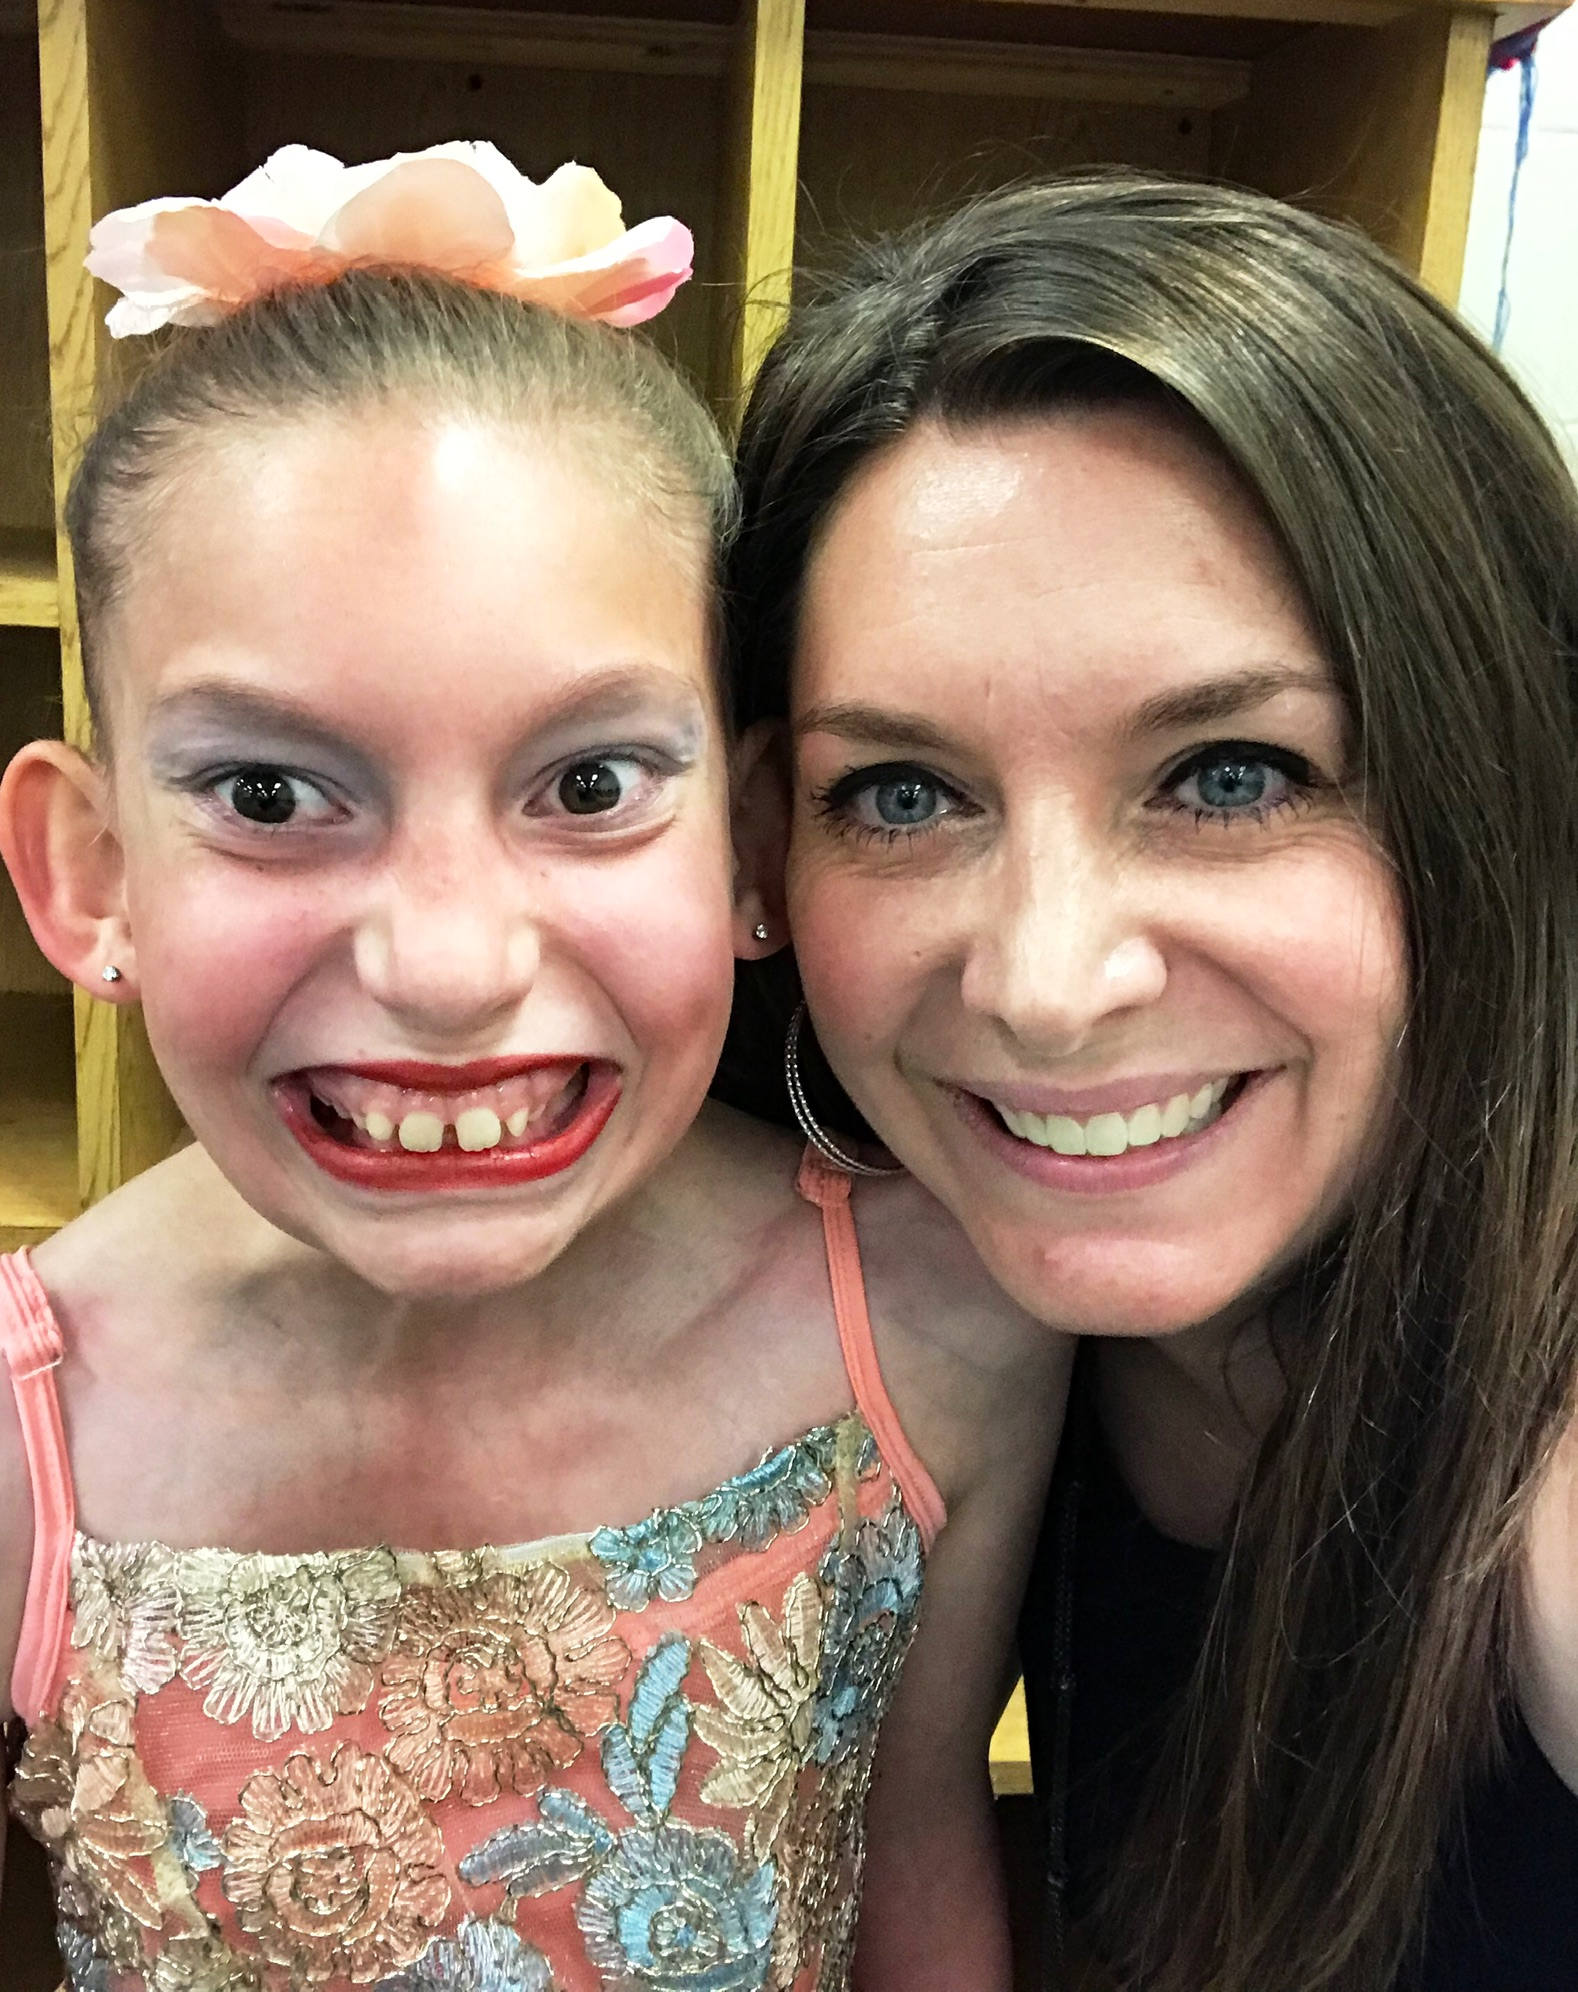 Mia and her daughter, Evalyn, who is dressed for a dance recital